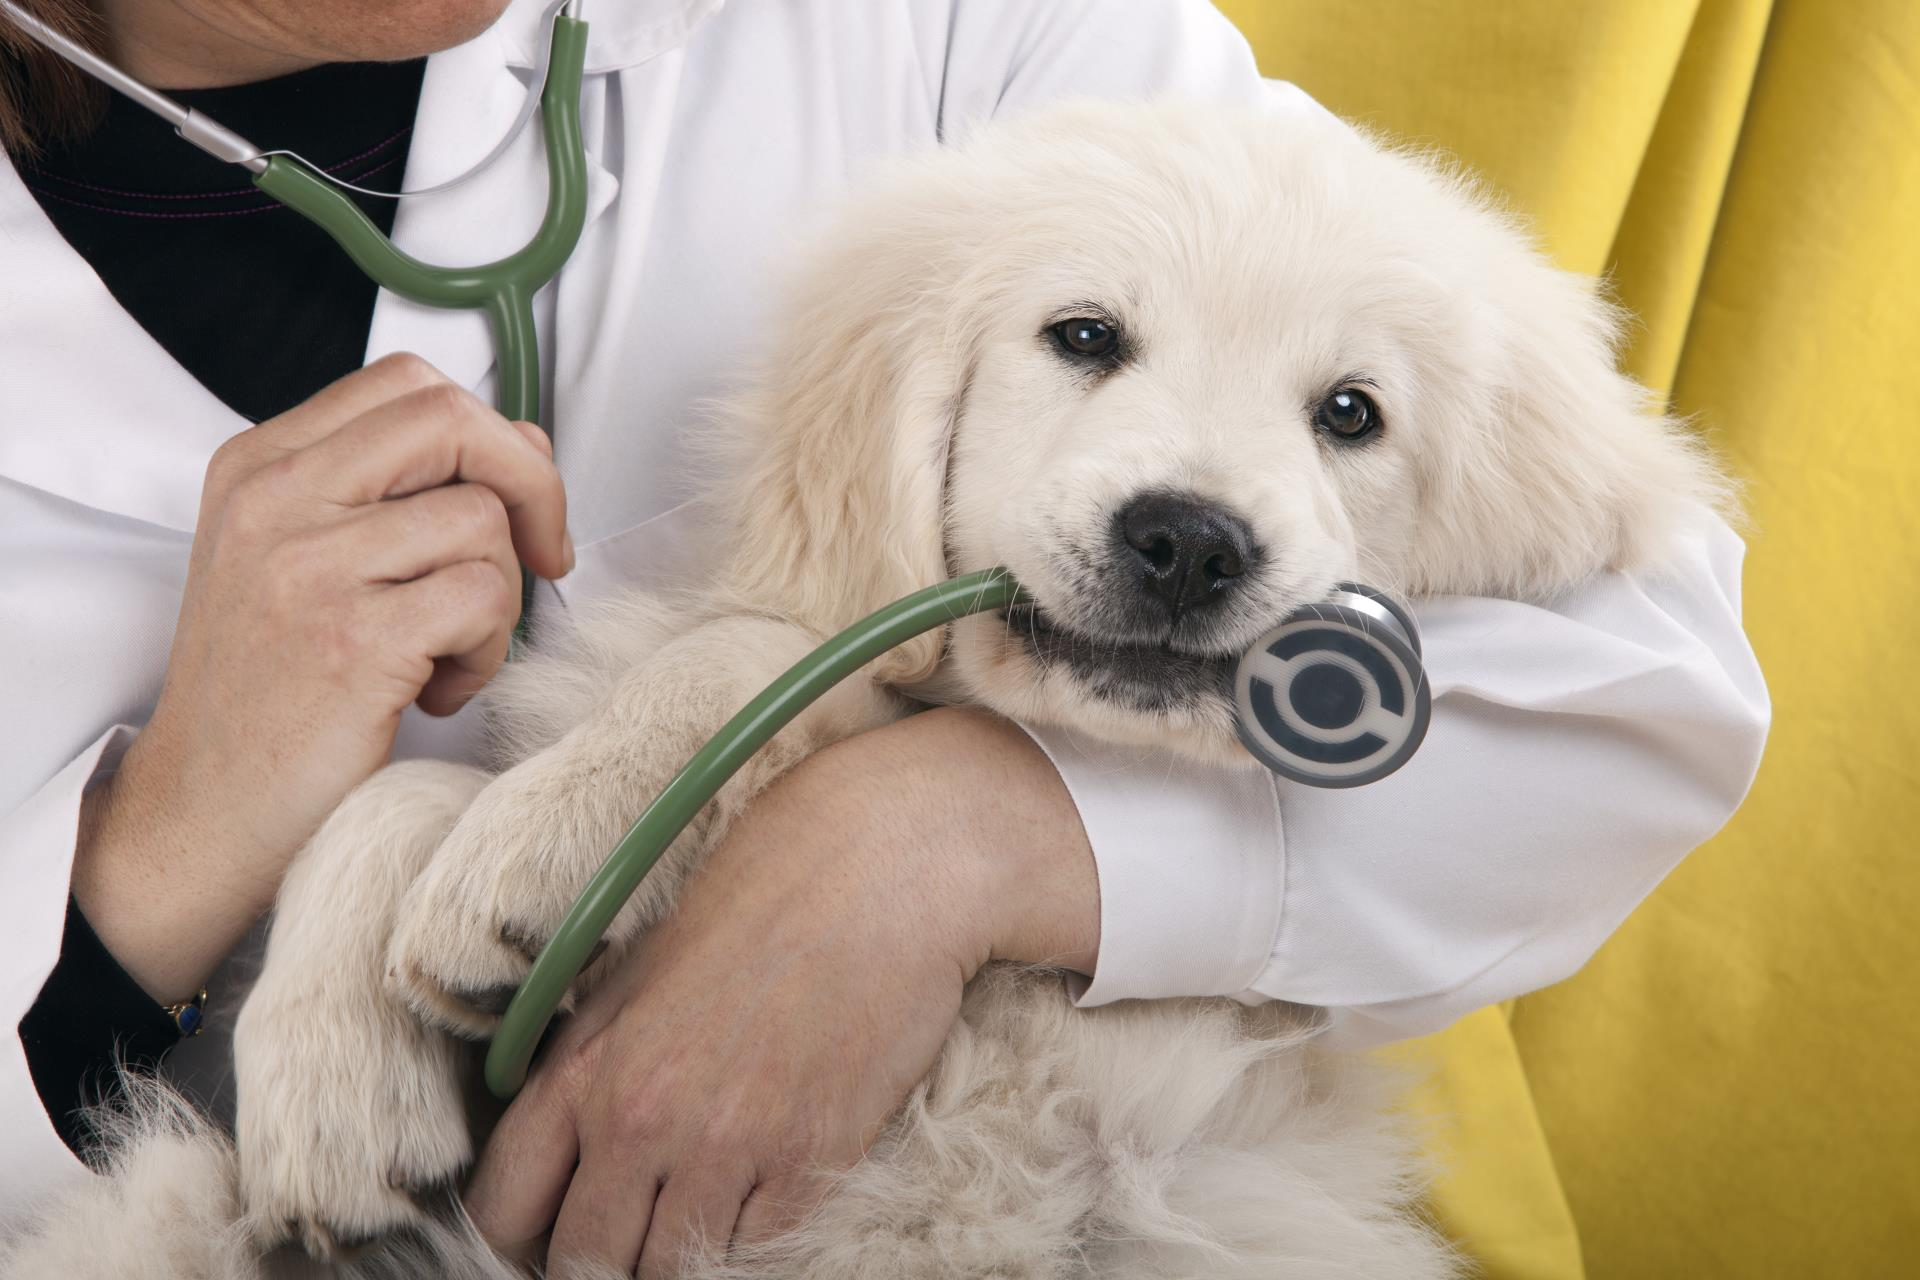 Puppy chewing on stethoscope